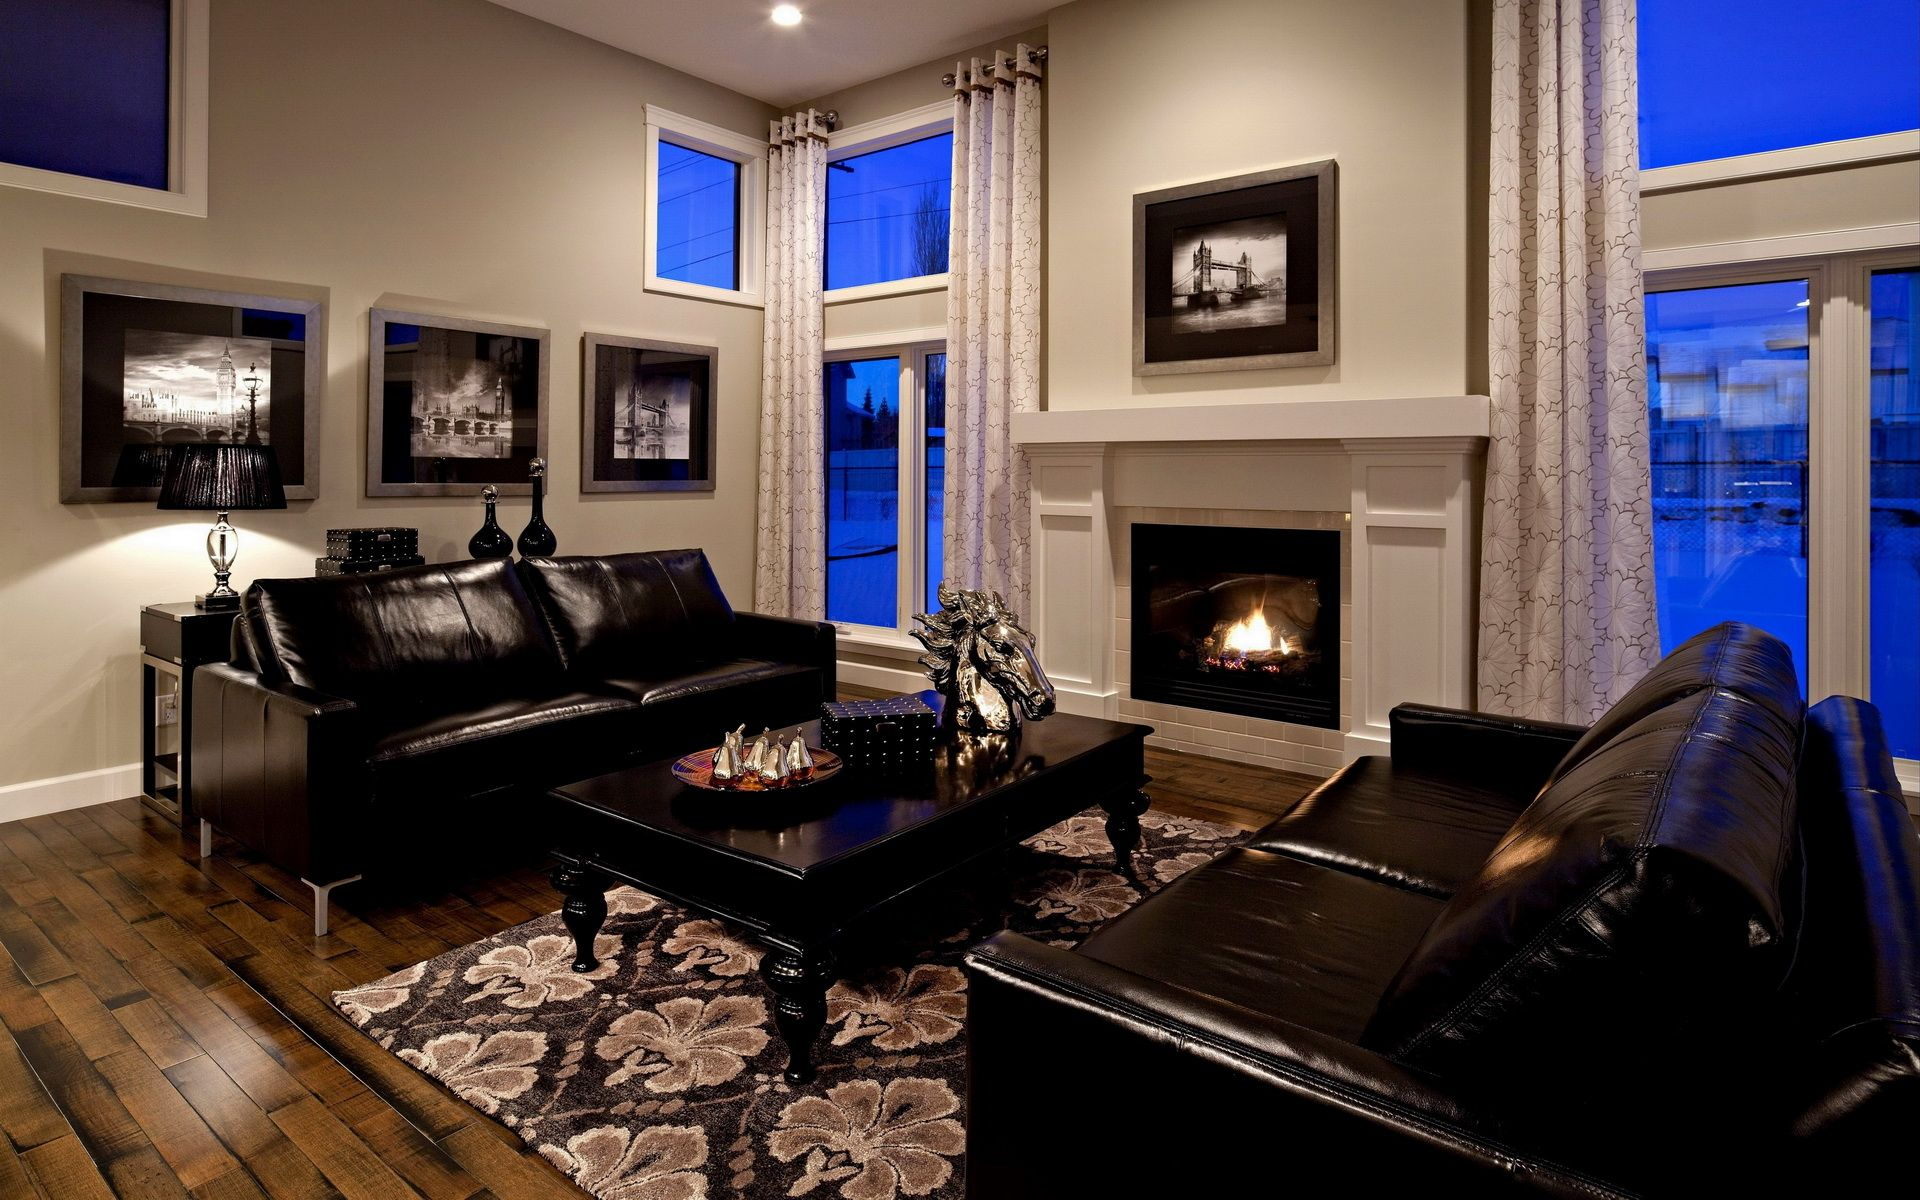 man made room interior style leather black sofa fireplace